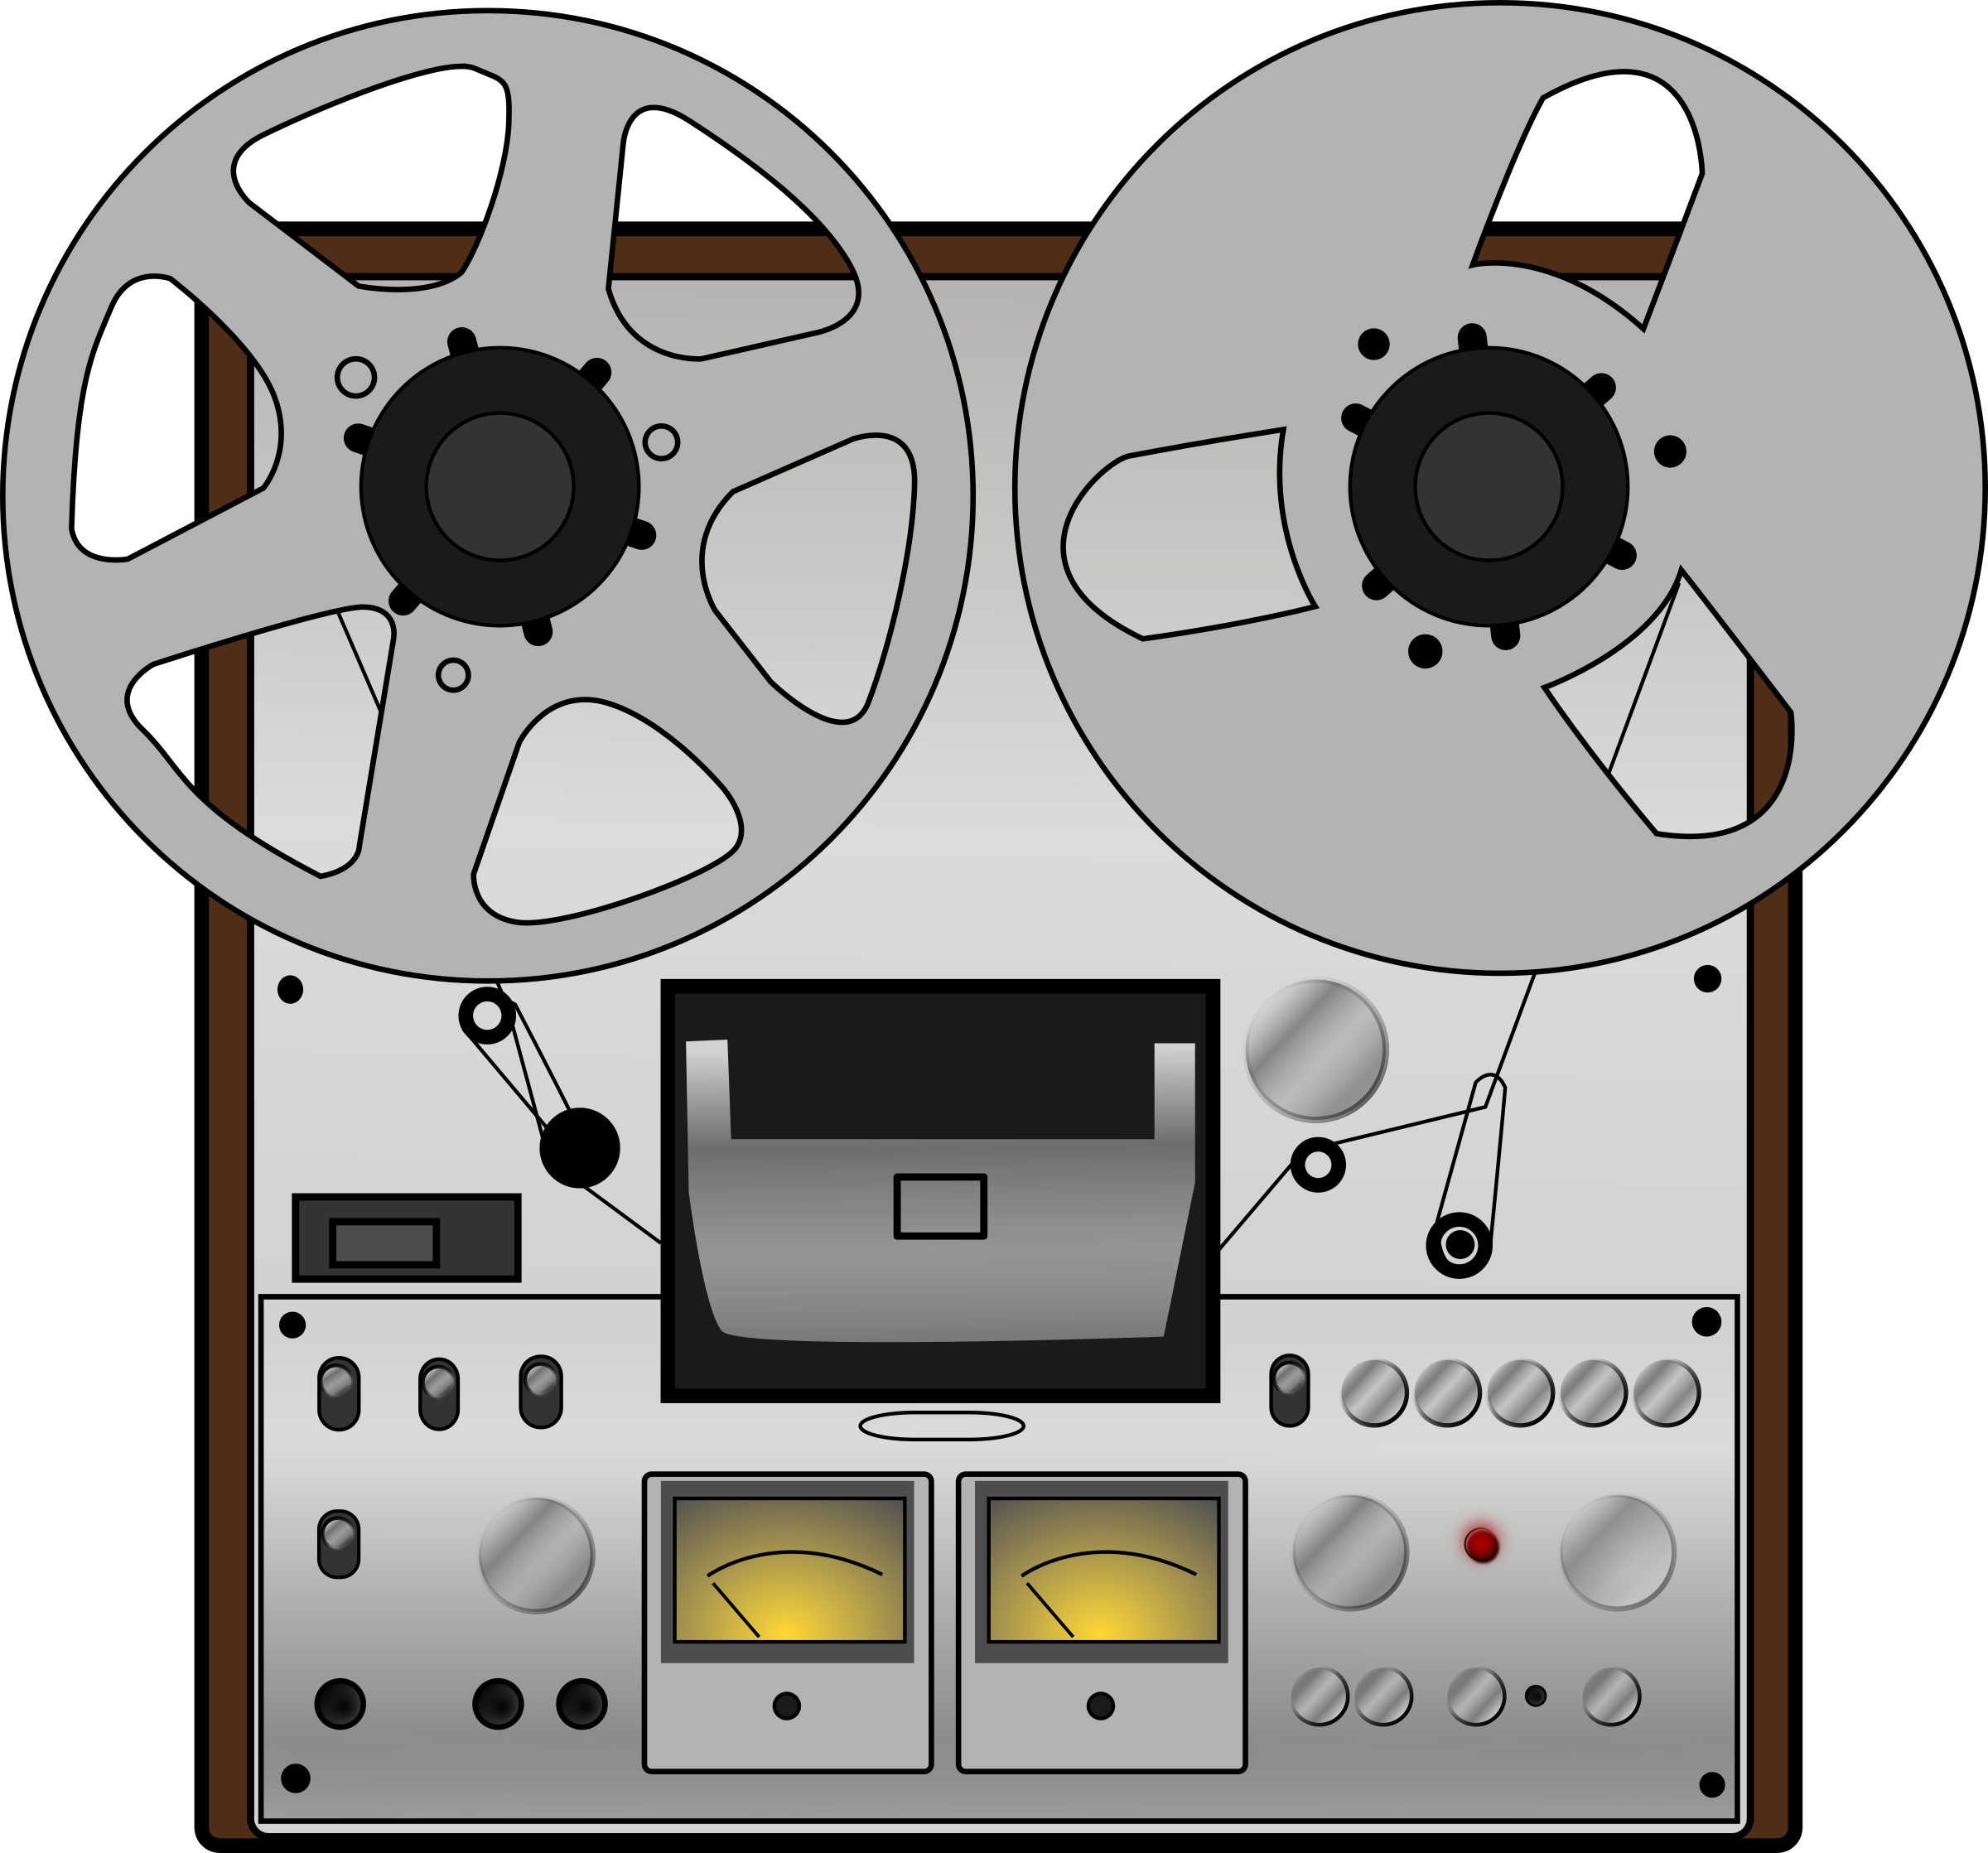 Clip recorder. Clipart reel to tape